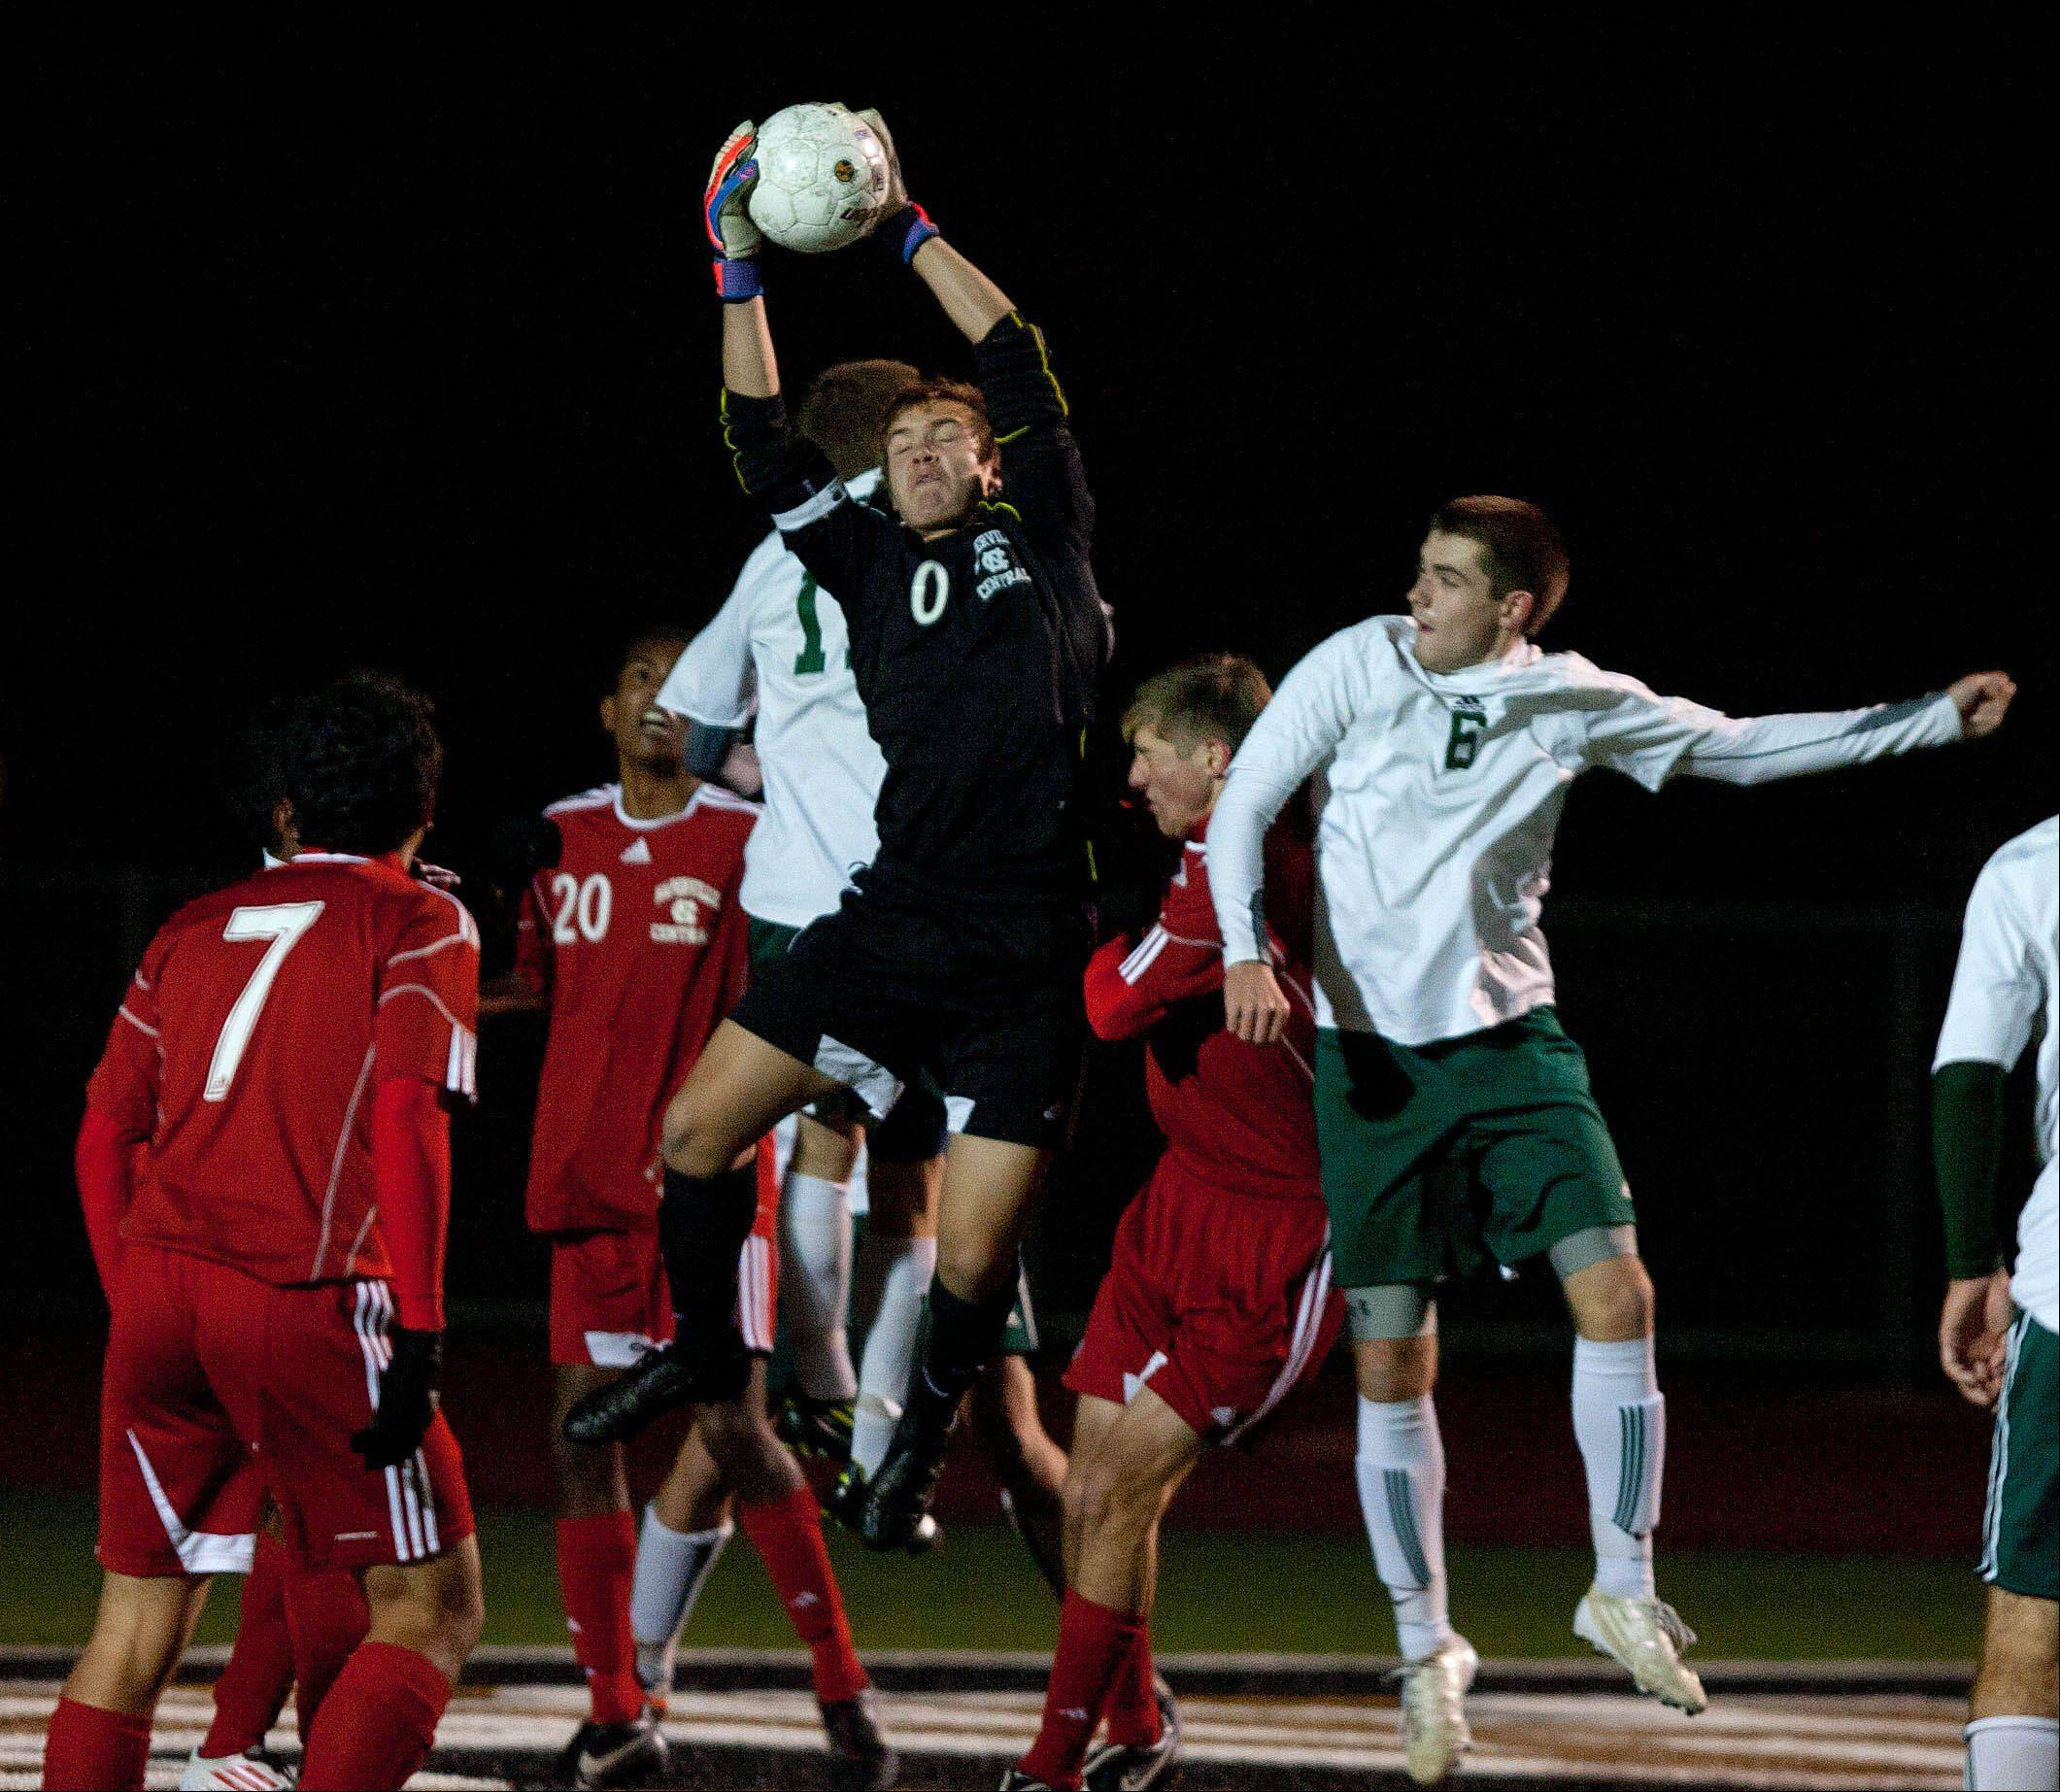 Daniel White/dwhite@dailyherald.comNaperville Central goalkeeper Jon Bedell makes the save over Stevenson's Alex Smith (6), during the boys 3A state semifinal soccer match held at Lincoln-Way North High School.